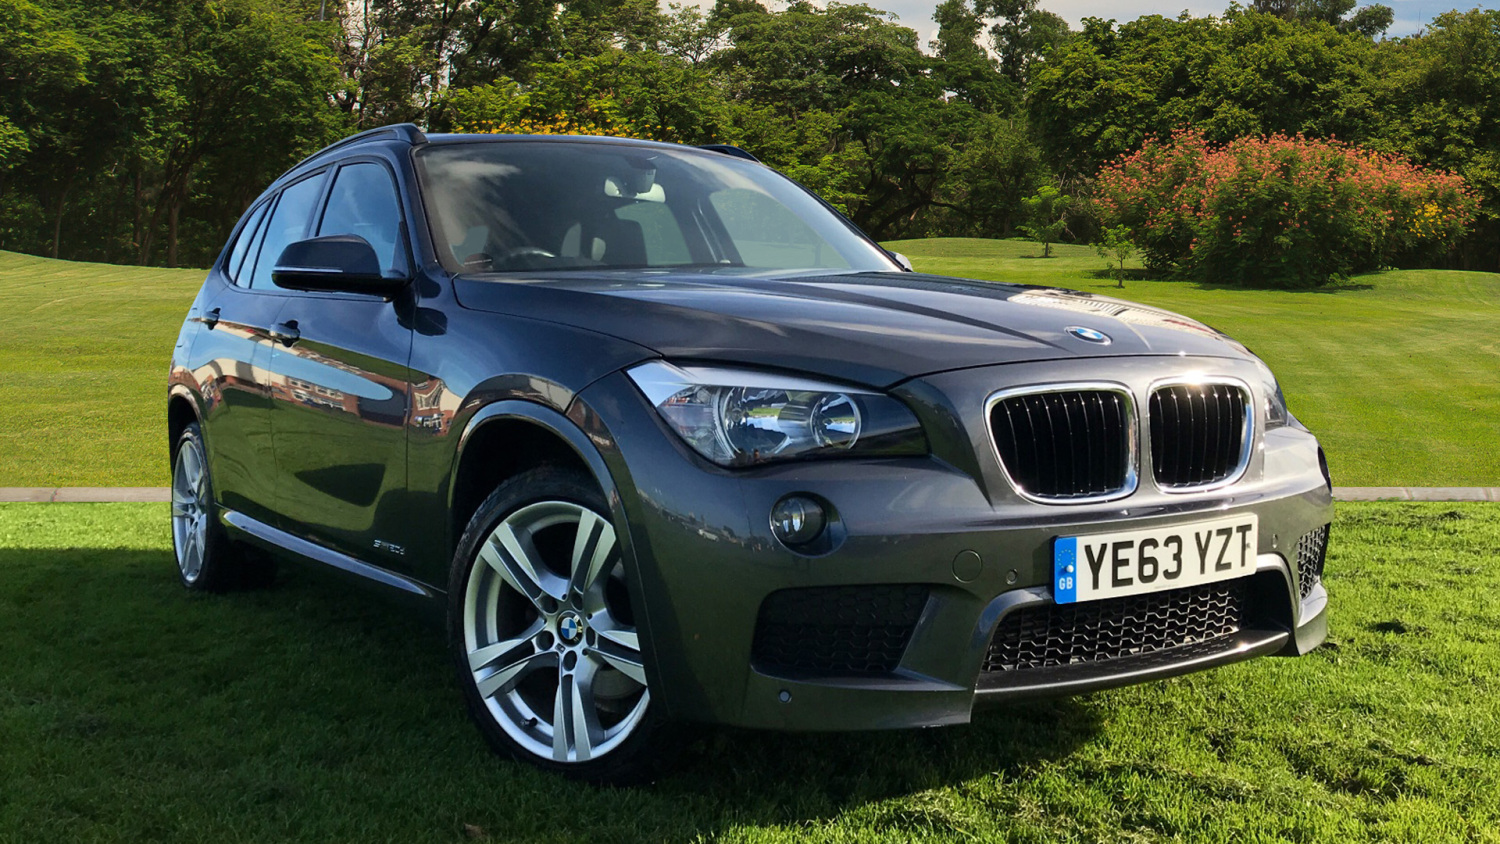 used bmw x1 sdrive 20d m sport 5dr diesel estate for sale vertu honda. Black Bedroom Furniture Sets. Home Design Ideas